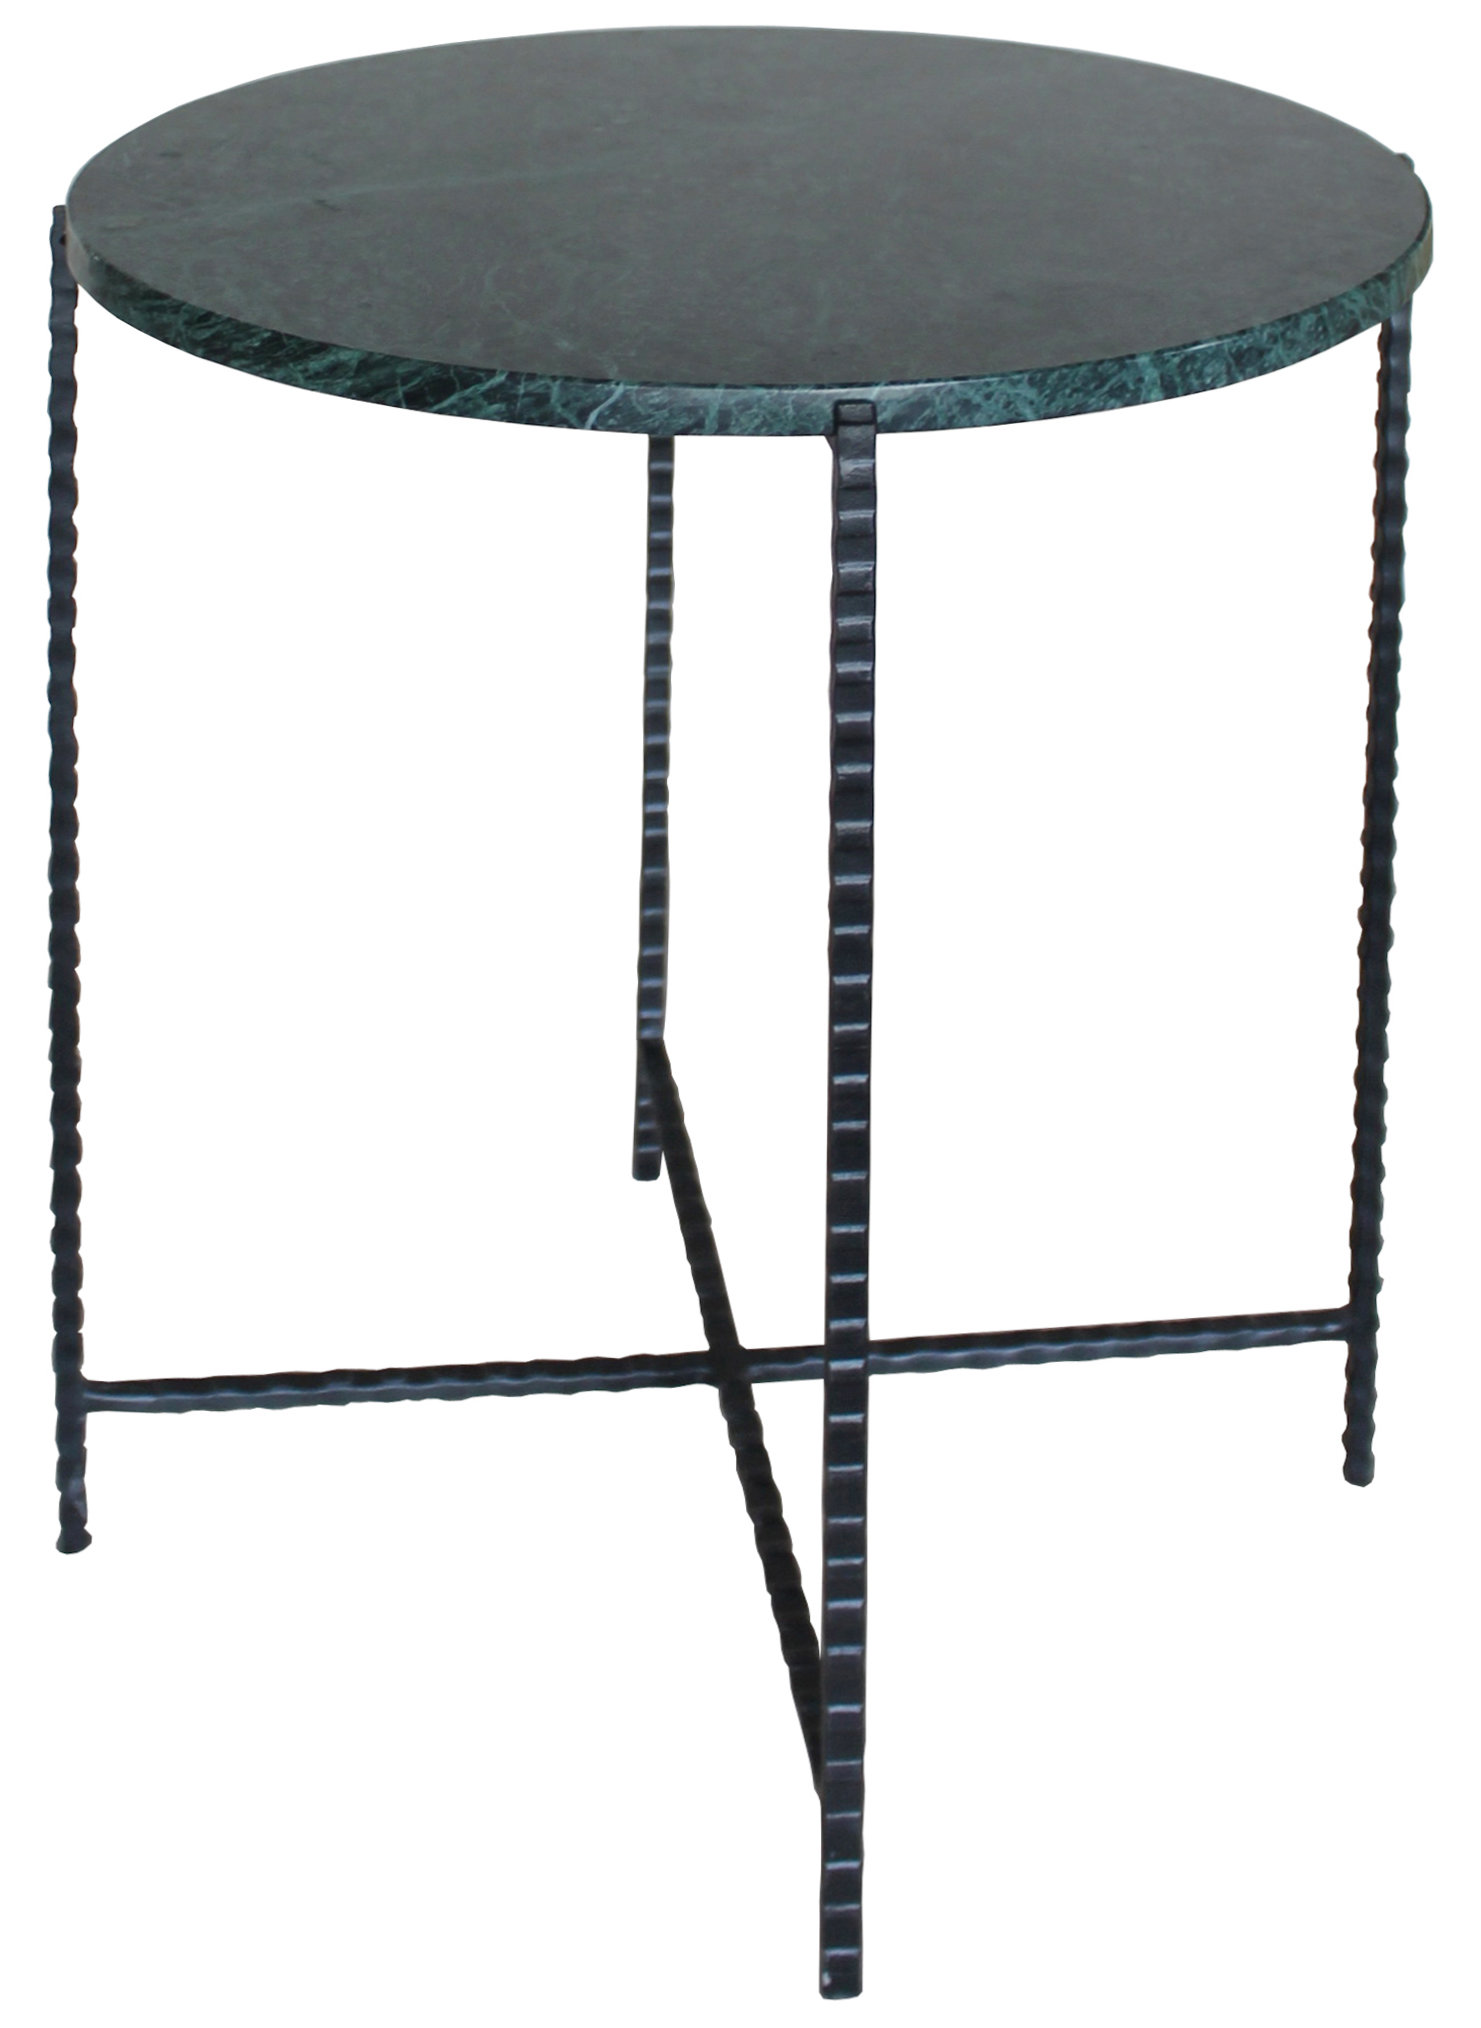 tipton tate paul end table round accent grey dining room teal metal side drinking glass sets unique rustic coffee tables west elm mahogany oriental floor lamps small aluminum